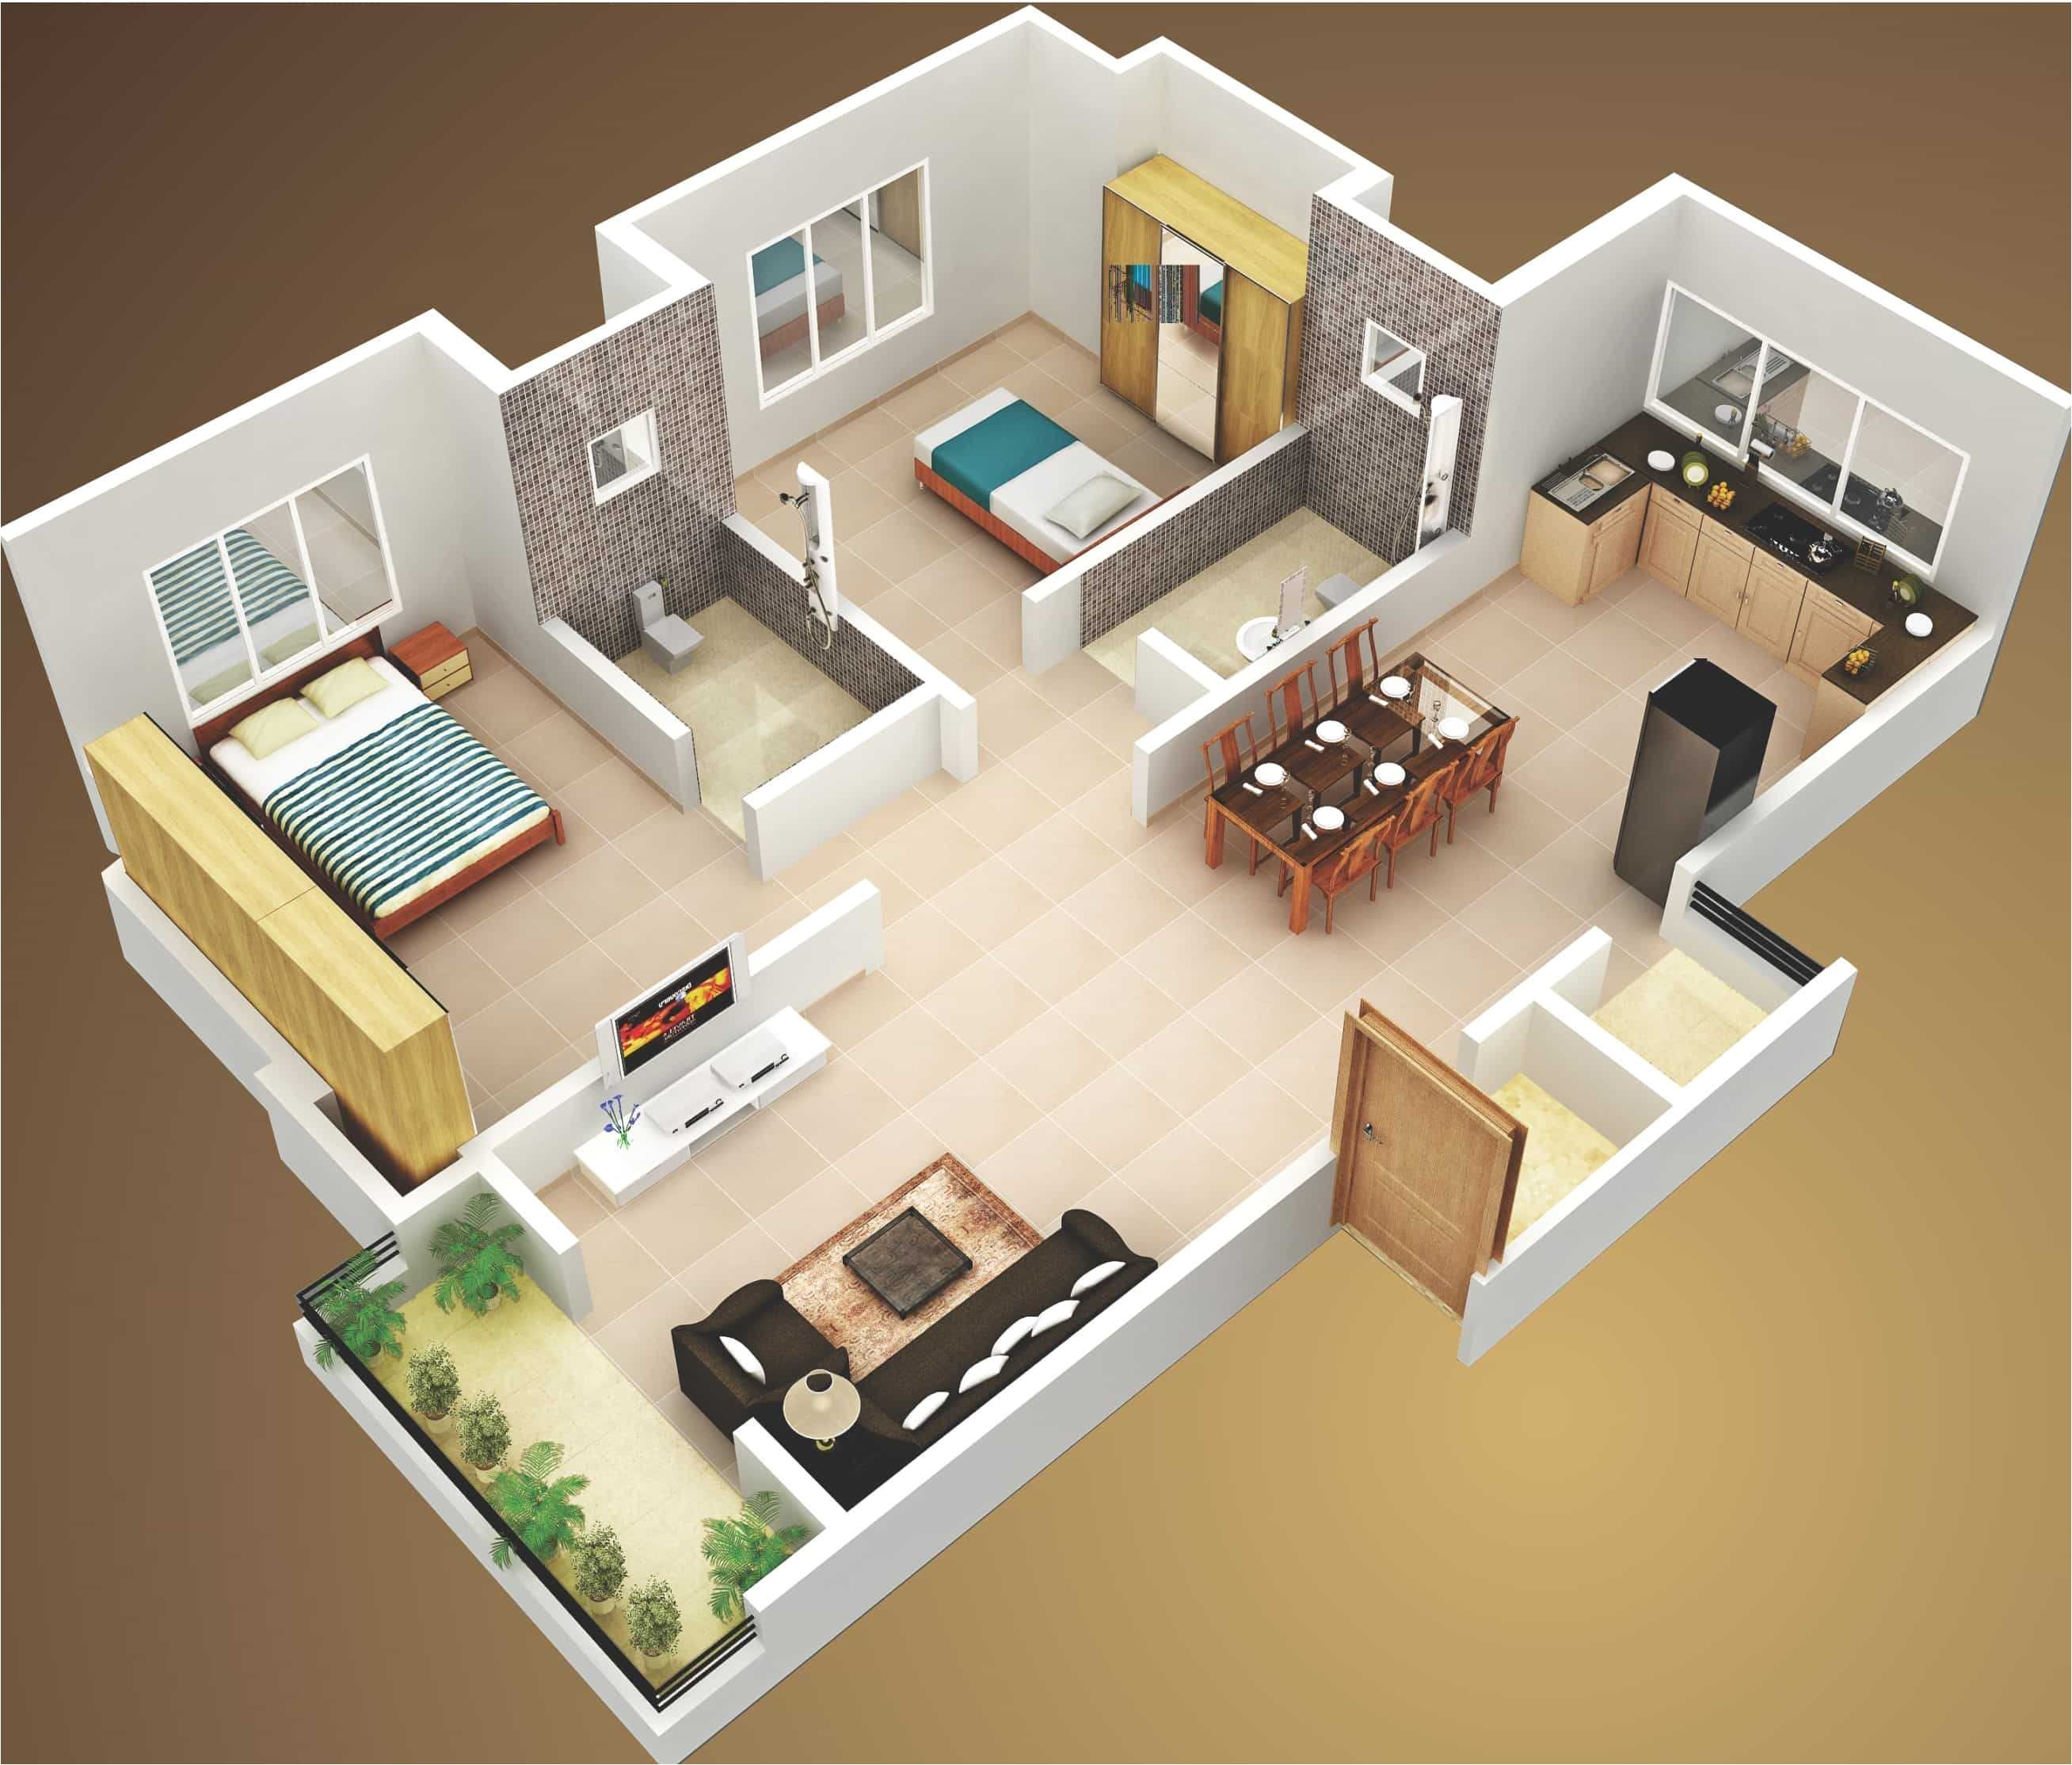 attractive simple house design plans 3d 2 bedrooms ideas also in bedroom with single bathroom pictures interior two